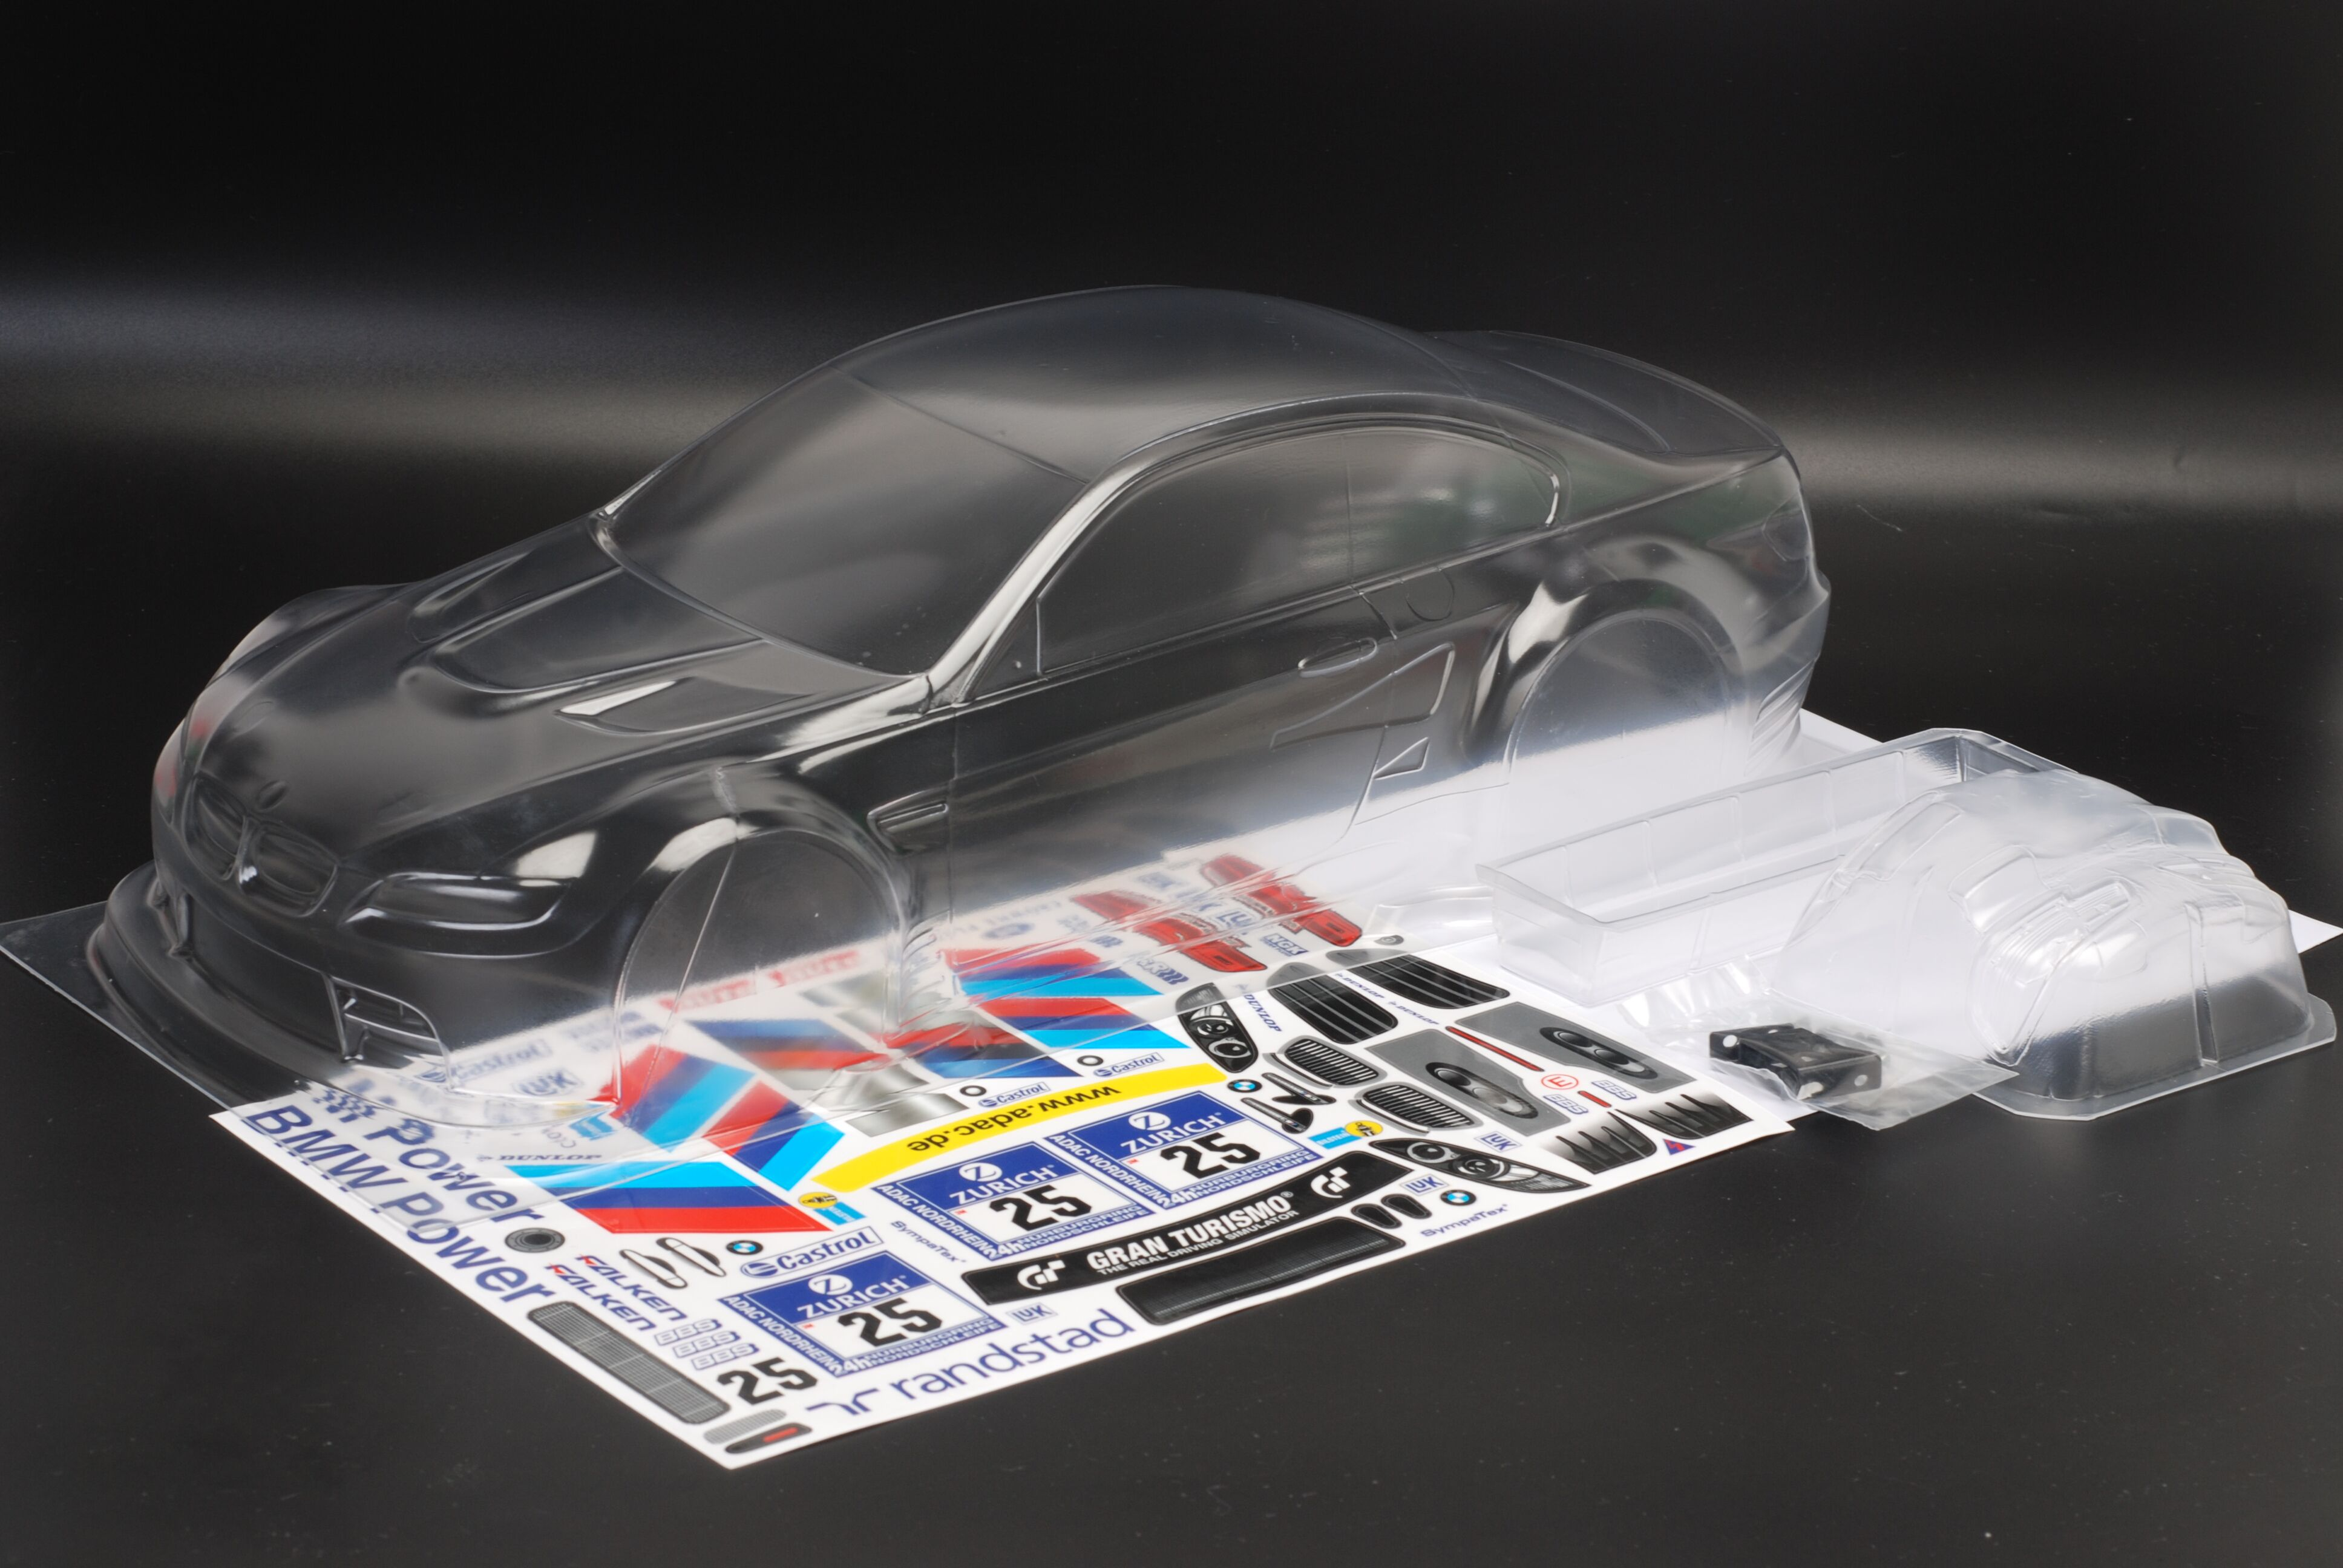 High quality 1/10 M3 GT2 RC PC Shell 190mm width Transparent clean no painted drift body RC for hsp mst yokomo Tamiya hpi enlarge